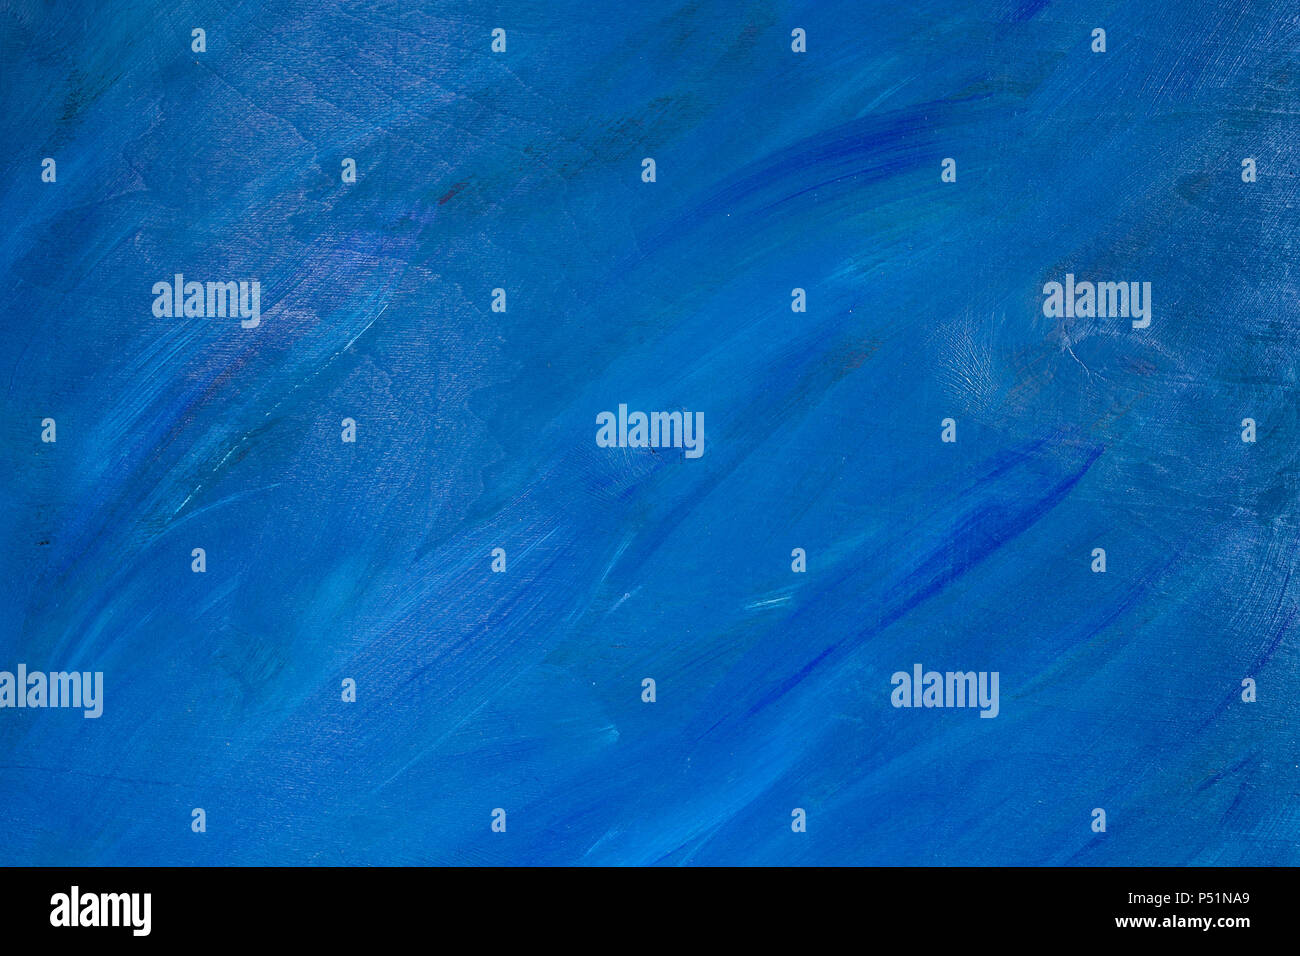 Natural wooden background blue painted. - Stock Image